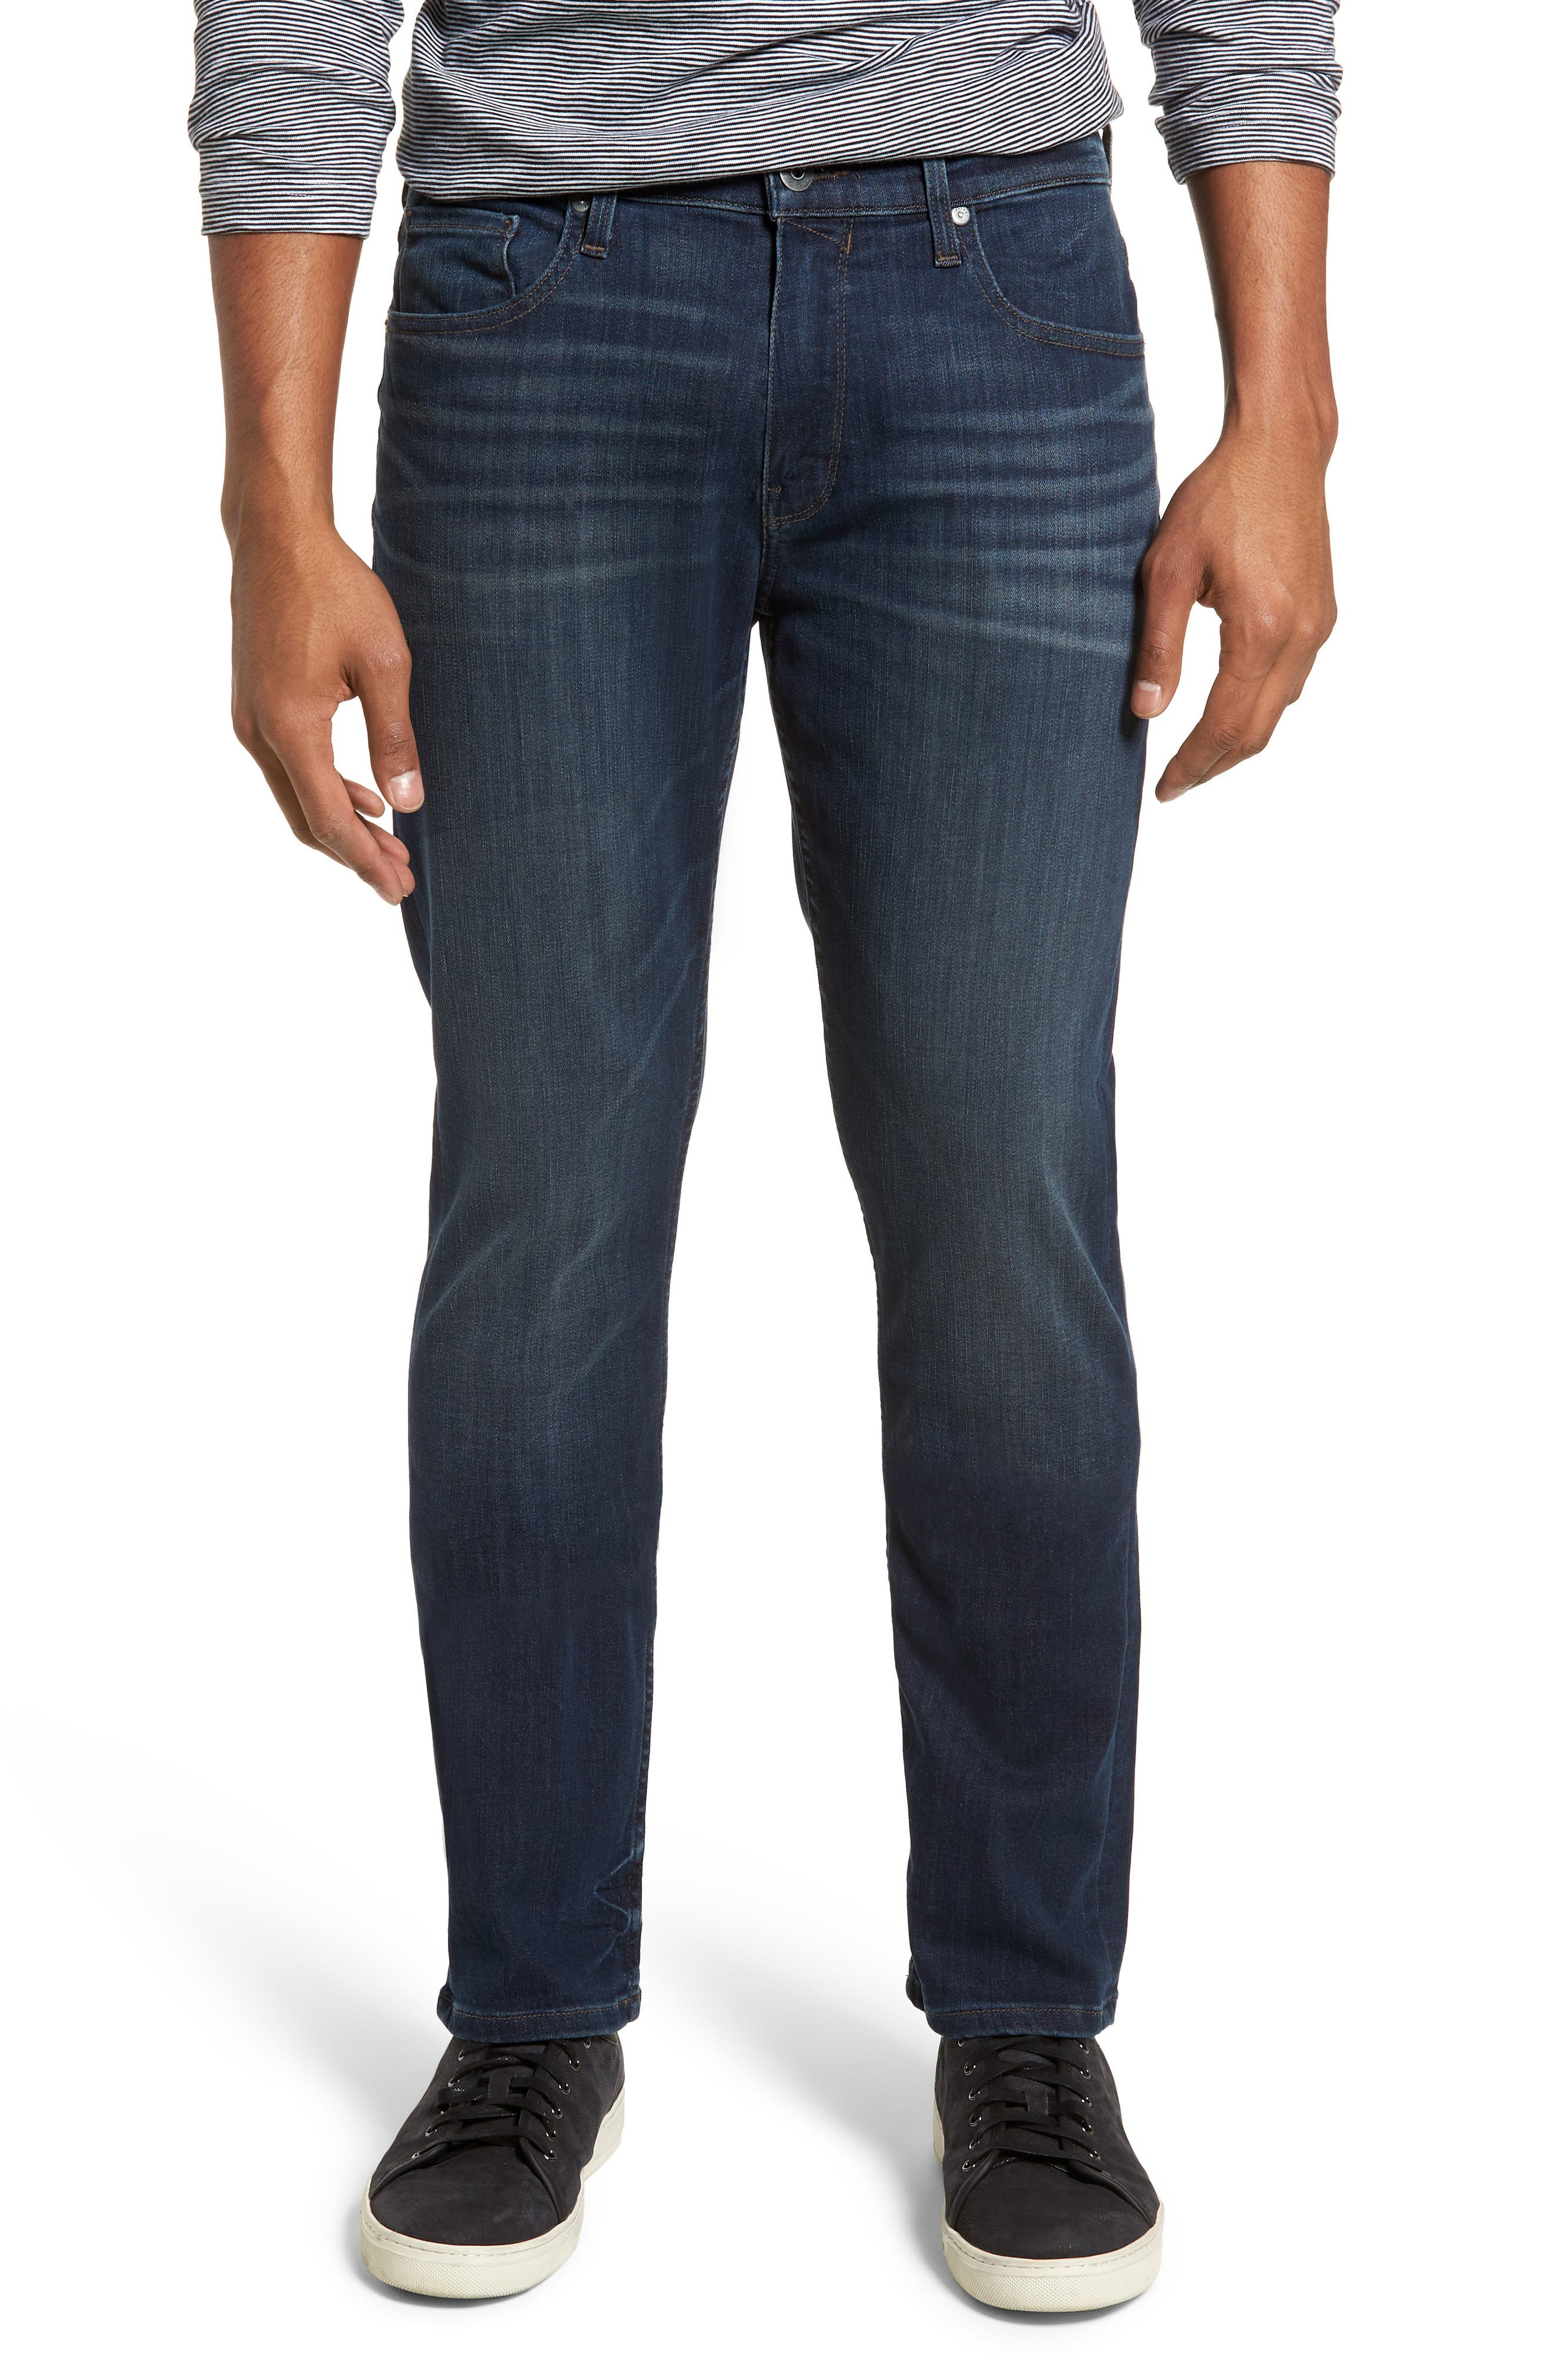 Transcend - Federal Slim Straight Leg Jeans,                         Main,                         color, FREEMAN